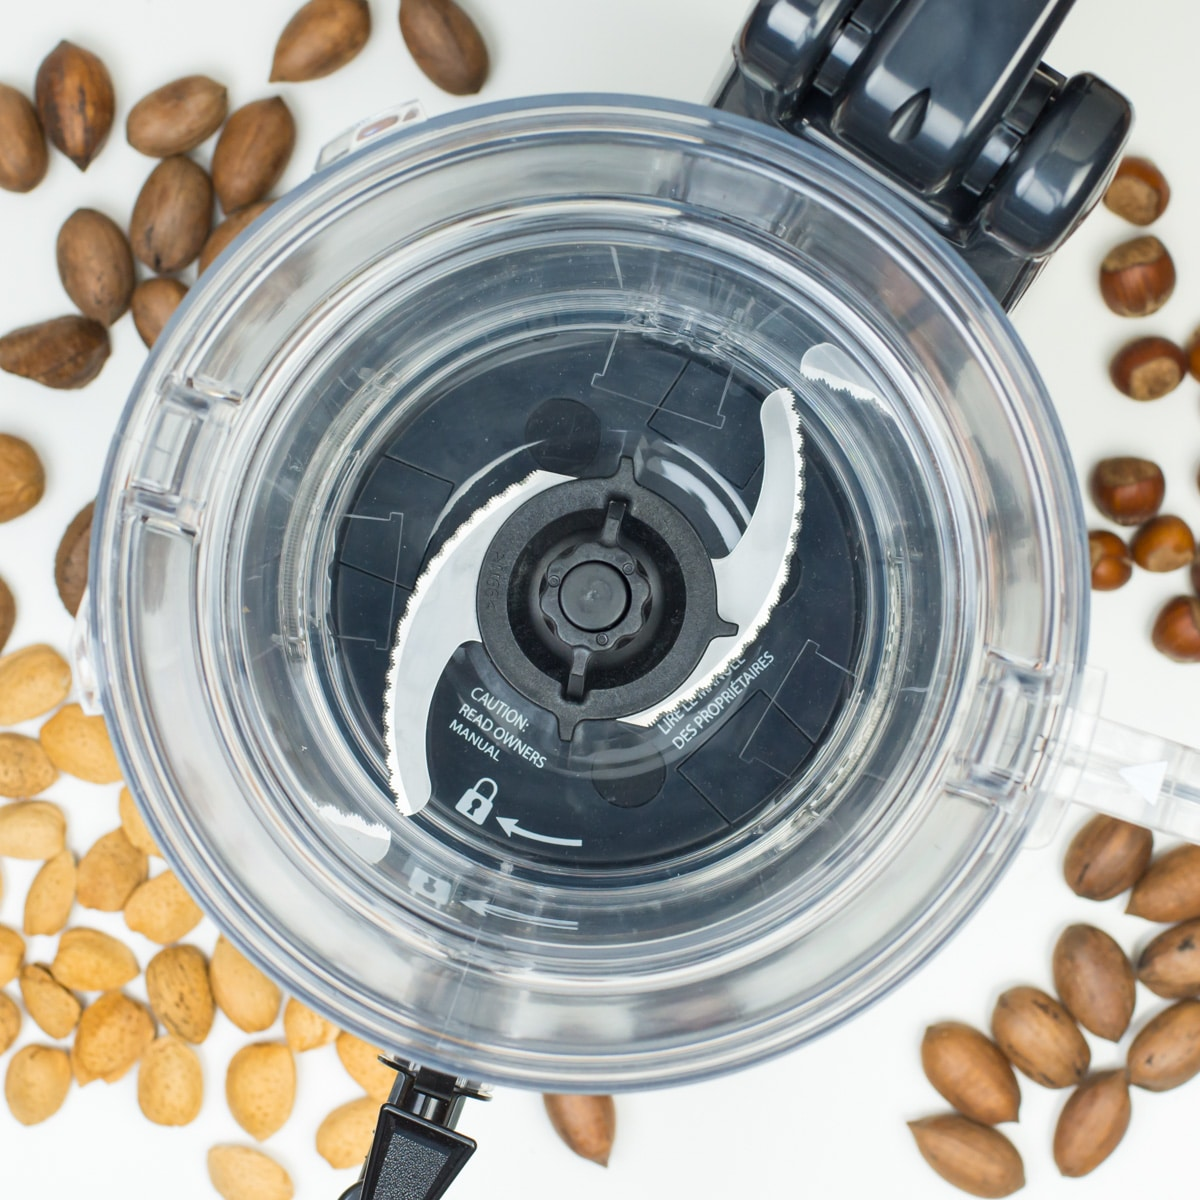 It's easy to use the NutraMilk to make plant-based milks, nut butters, and even dips like hummus!